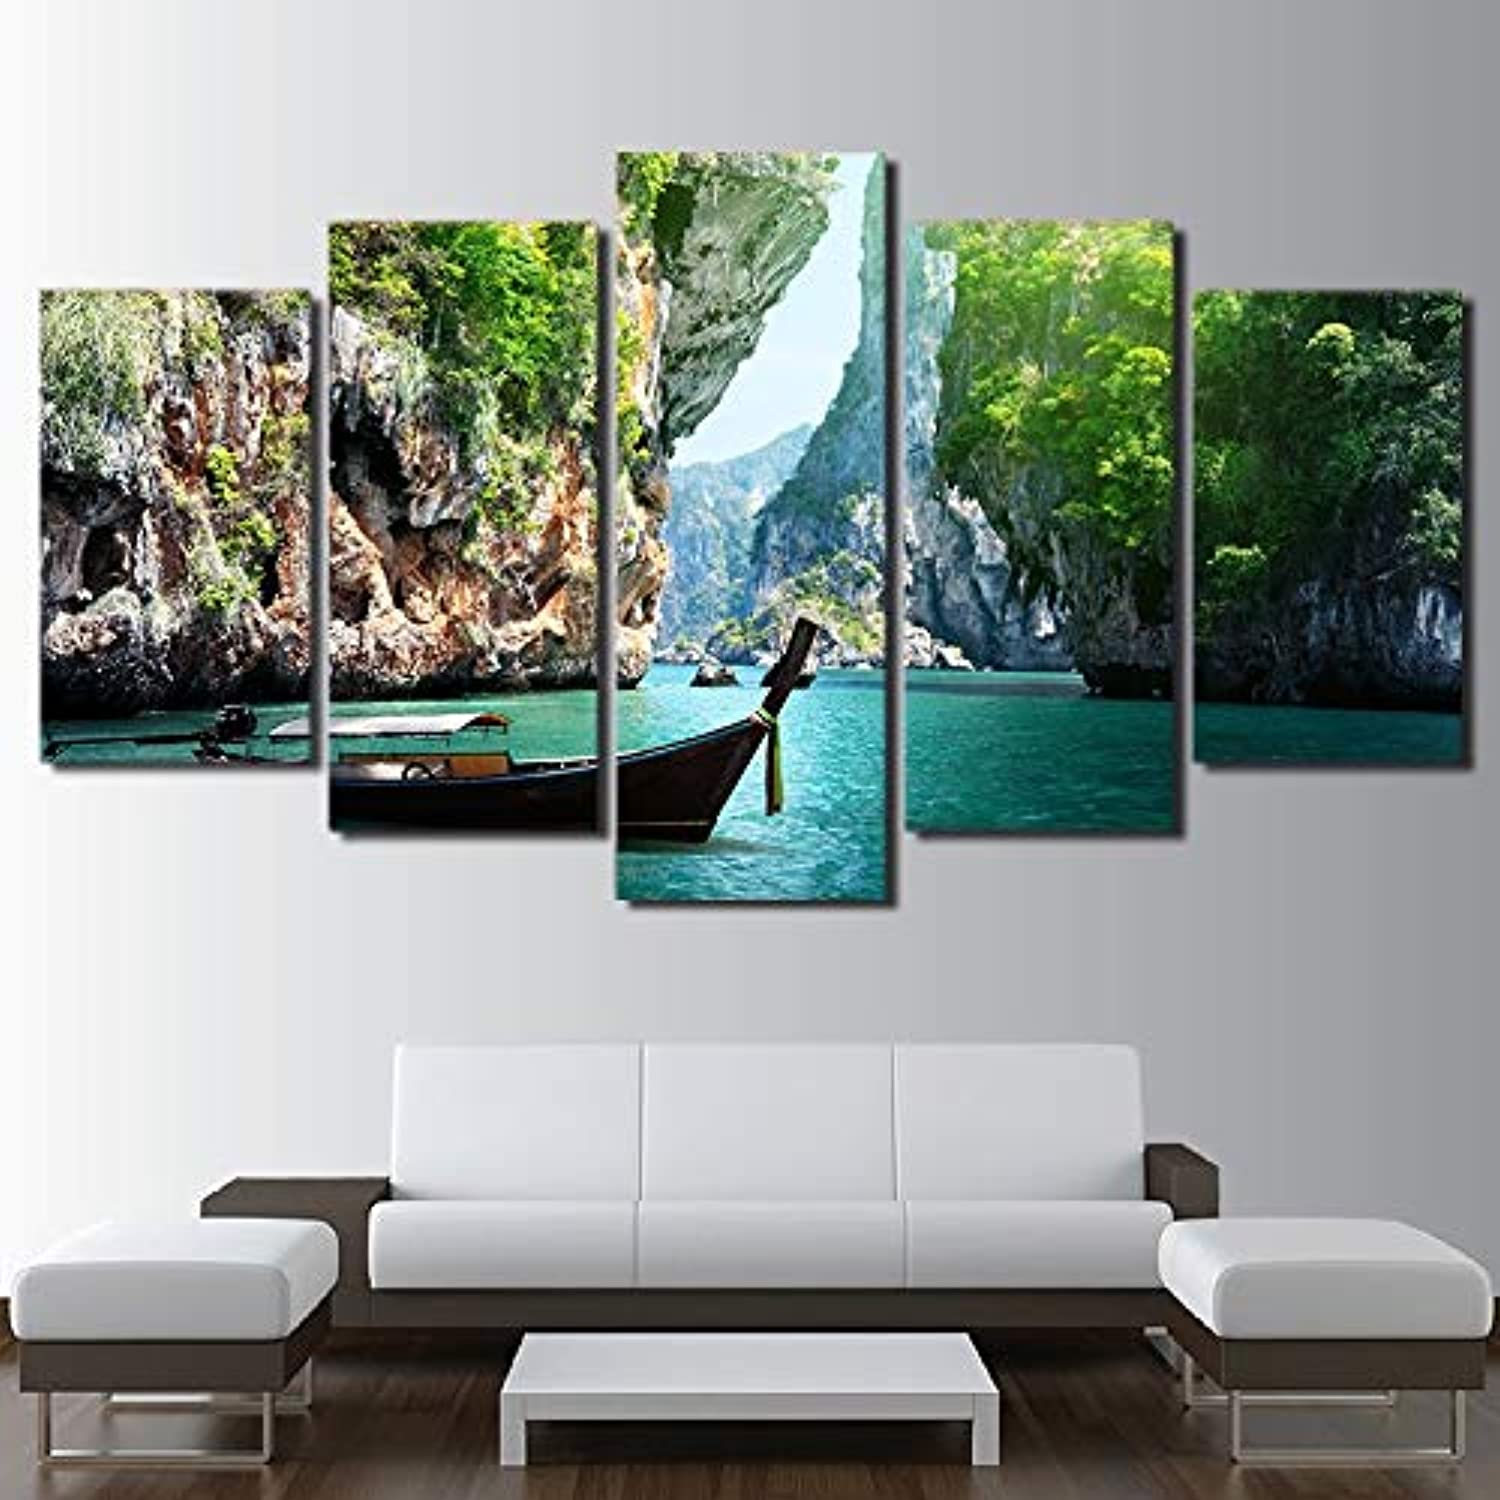 Living Room Modular HD Printed Canvas Photos 5 Piece Pcs Nature Canyon Landscape Framed Wall Art Painting Poster Home Decor